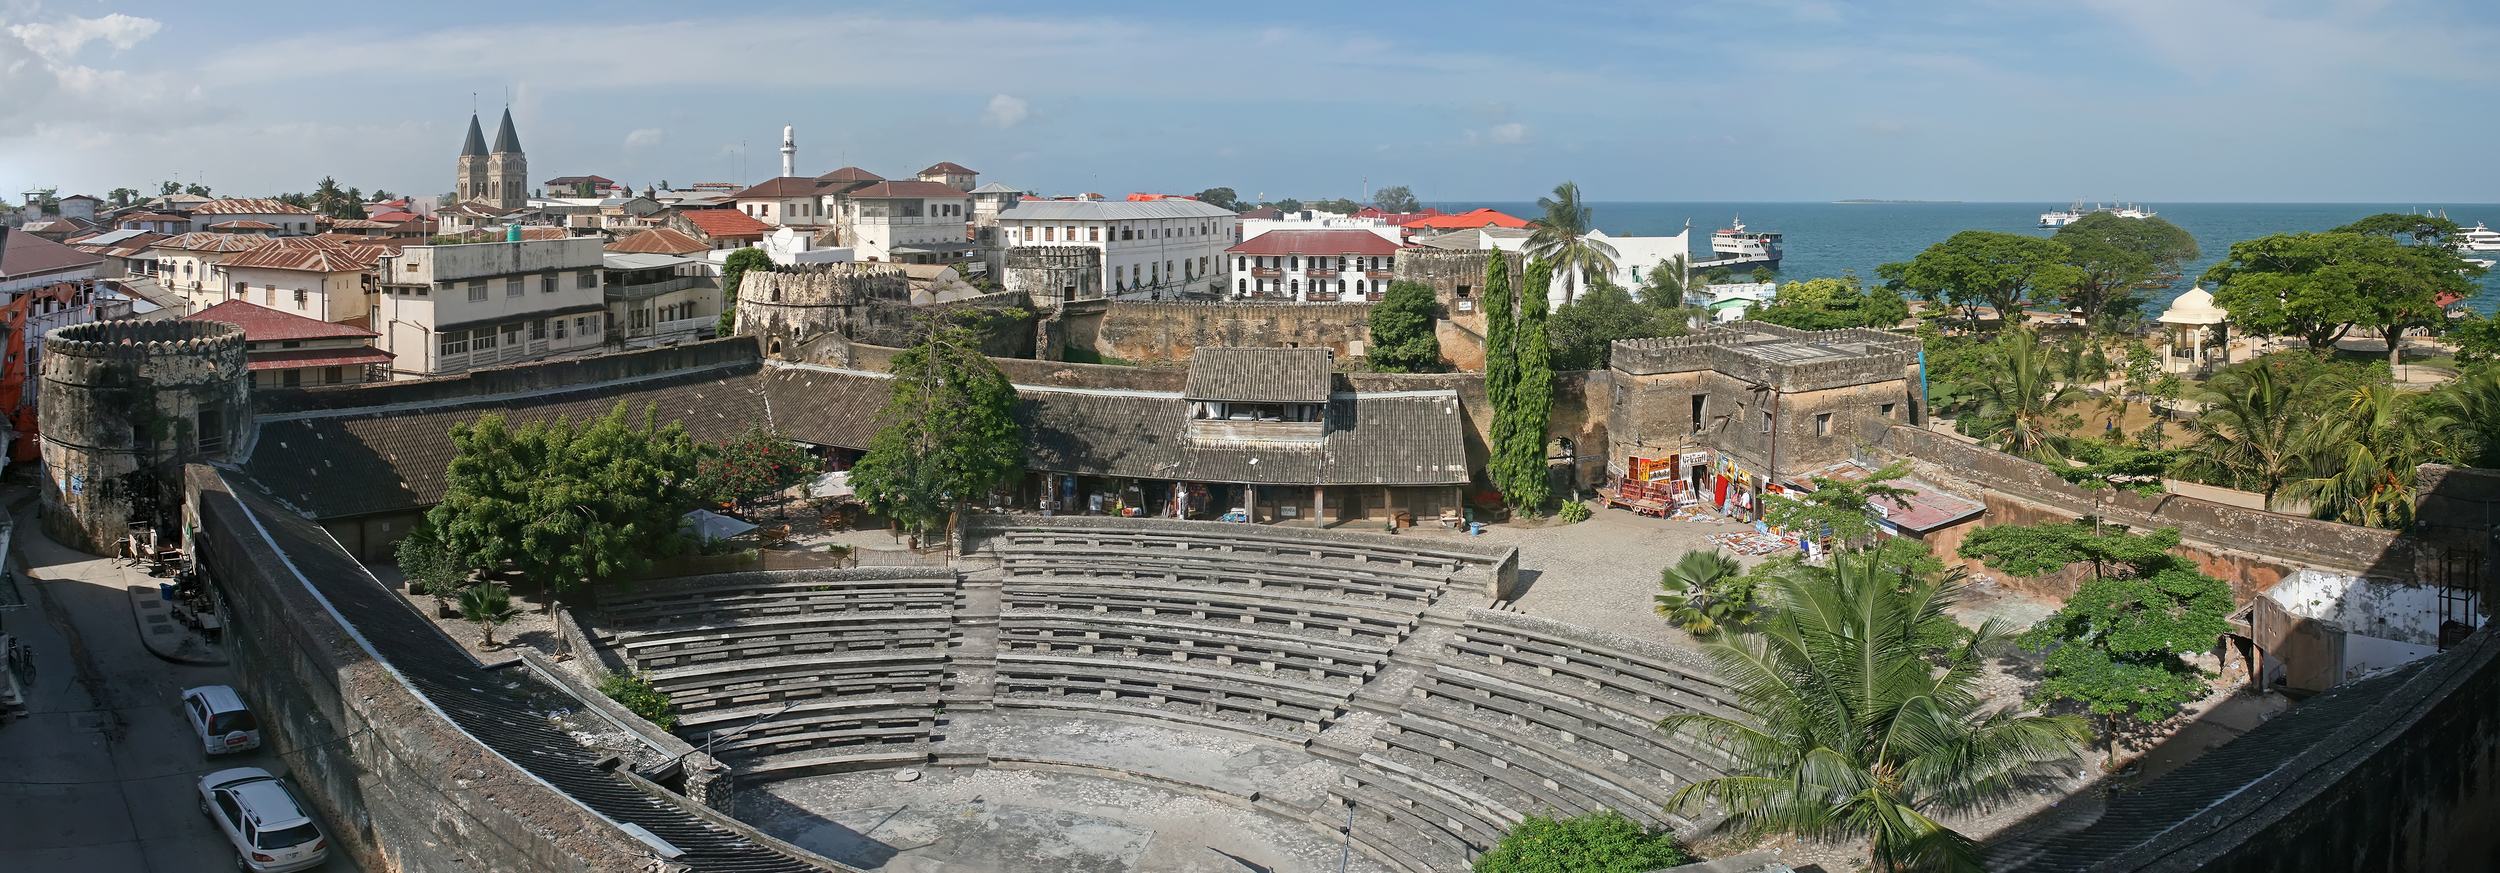 The old fort of Zanzibar, Tanzania (Source: Wikimedia Commons)